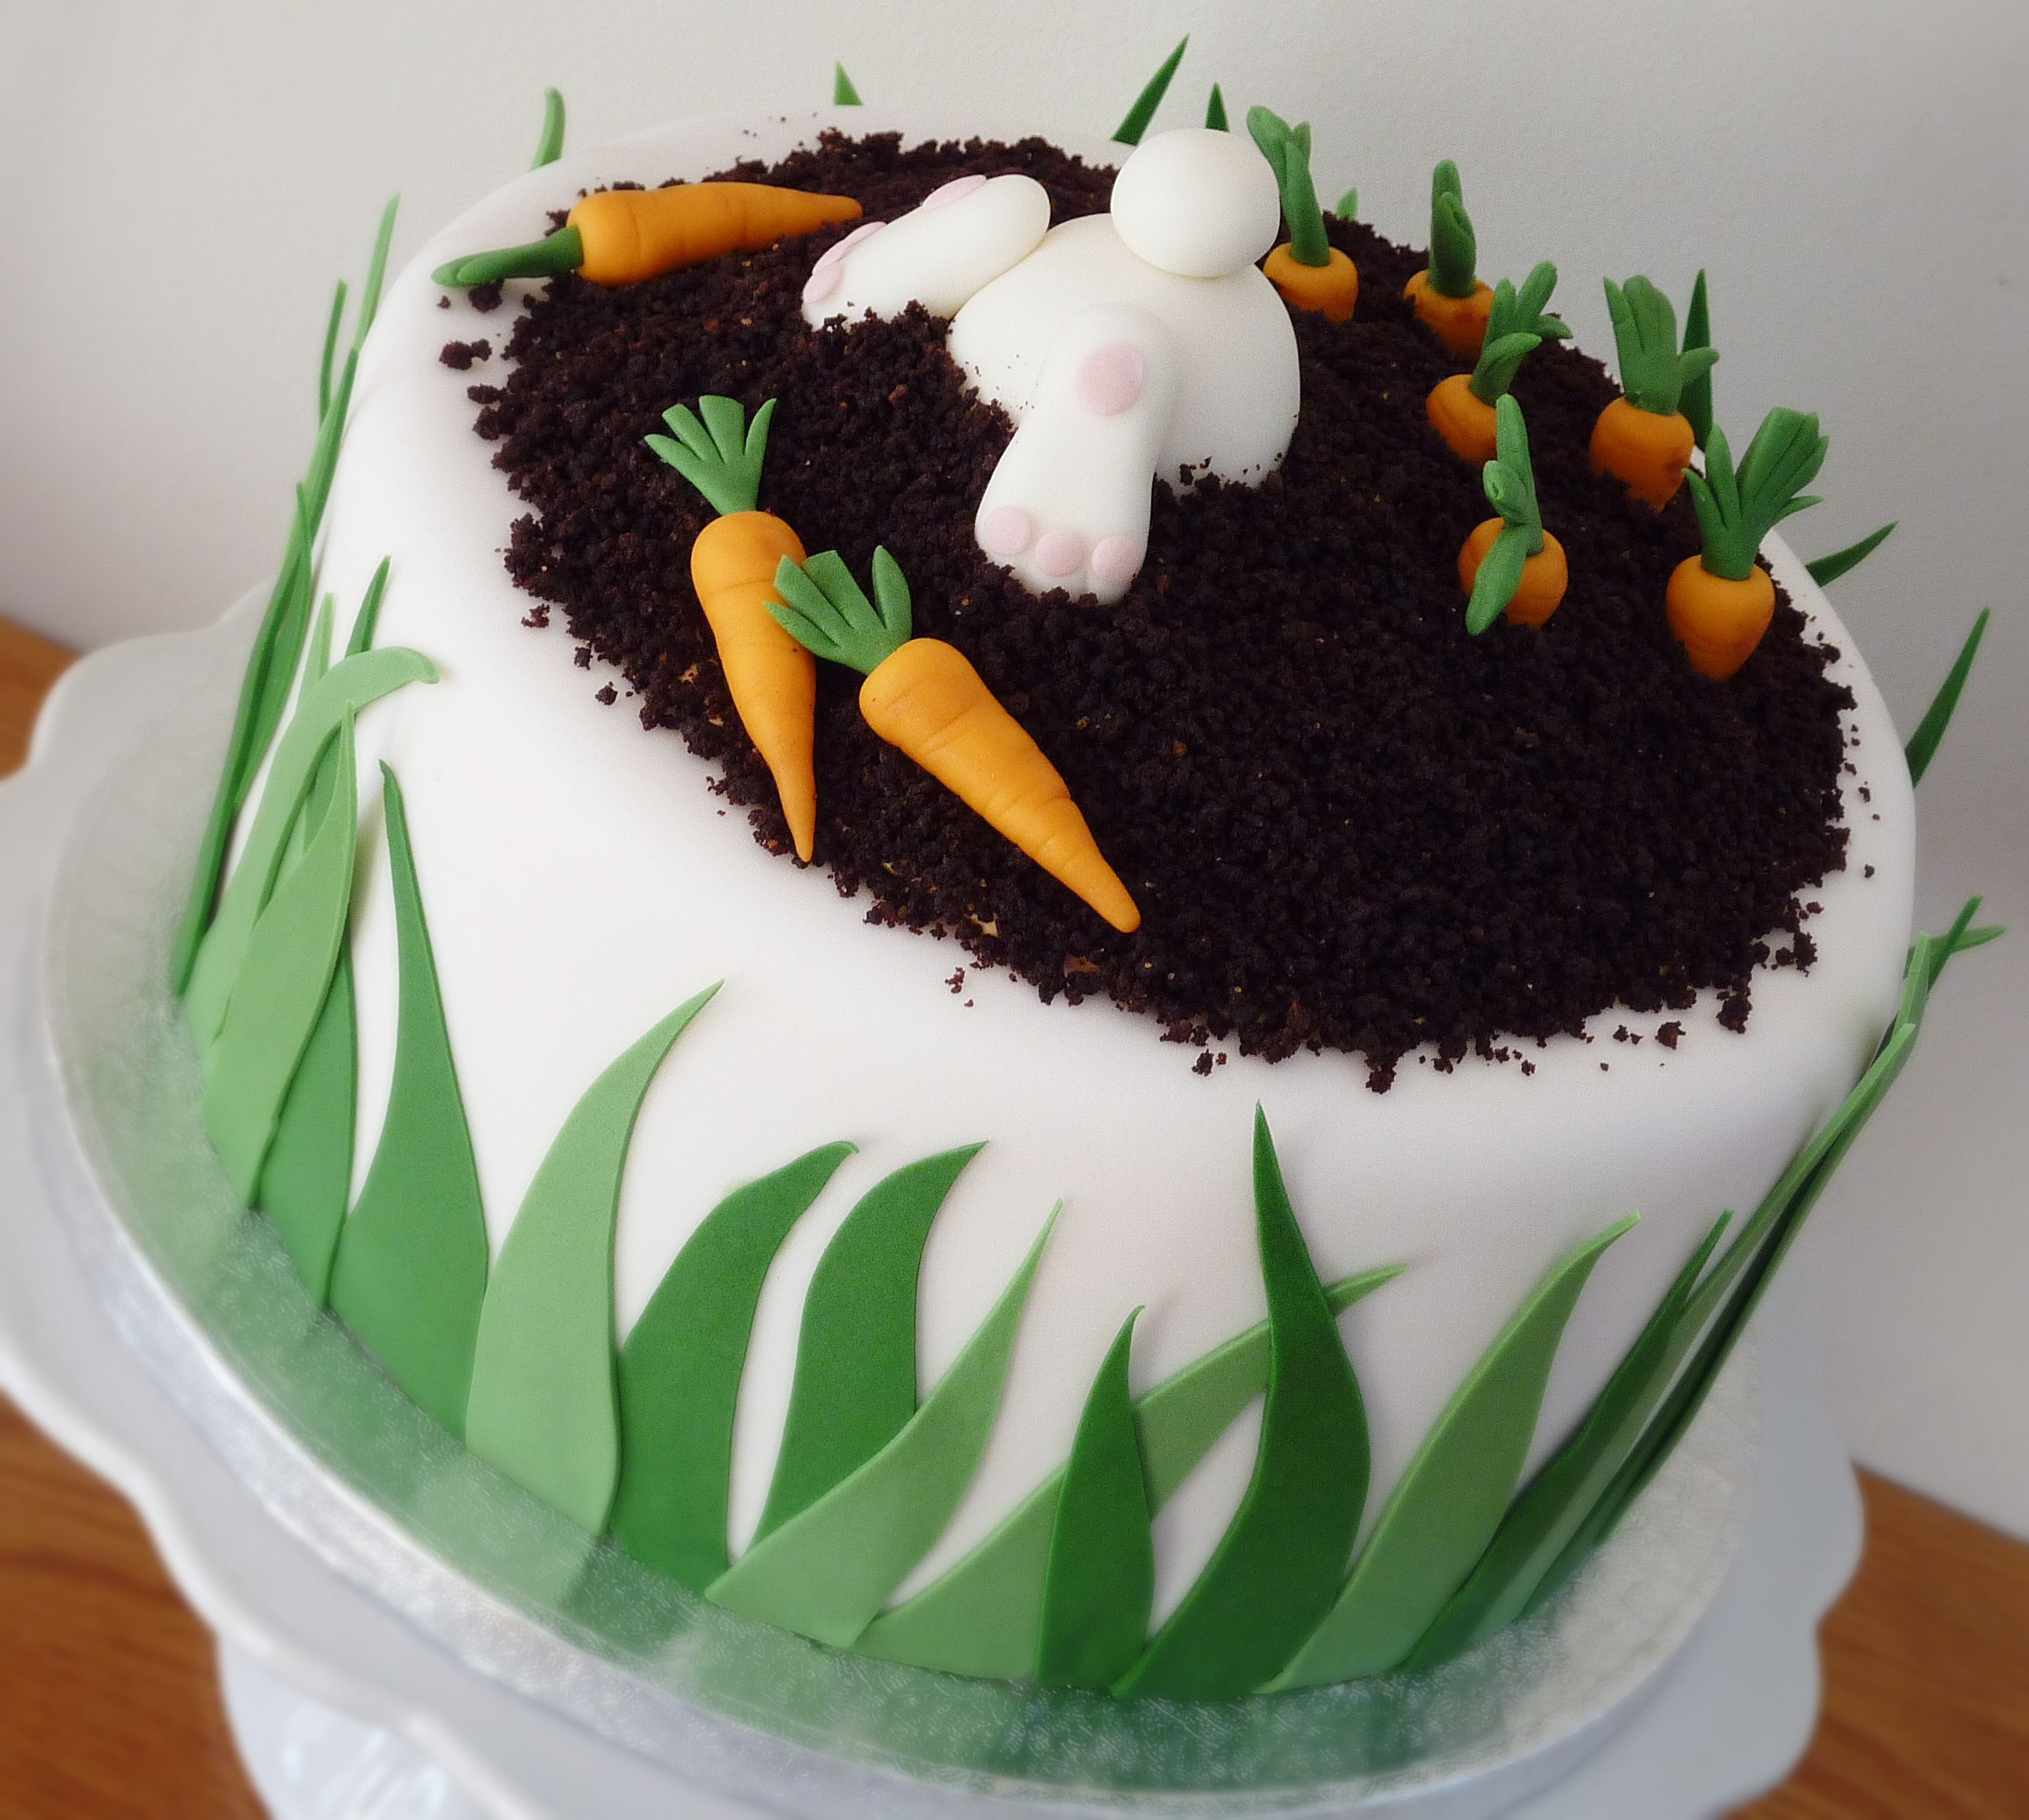 I Made This Funny Bunny Carrot Cake